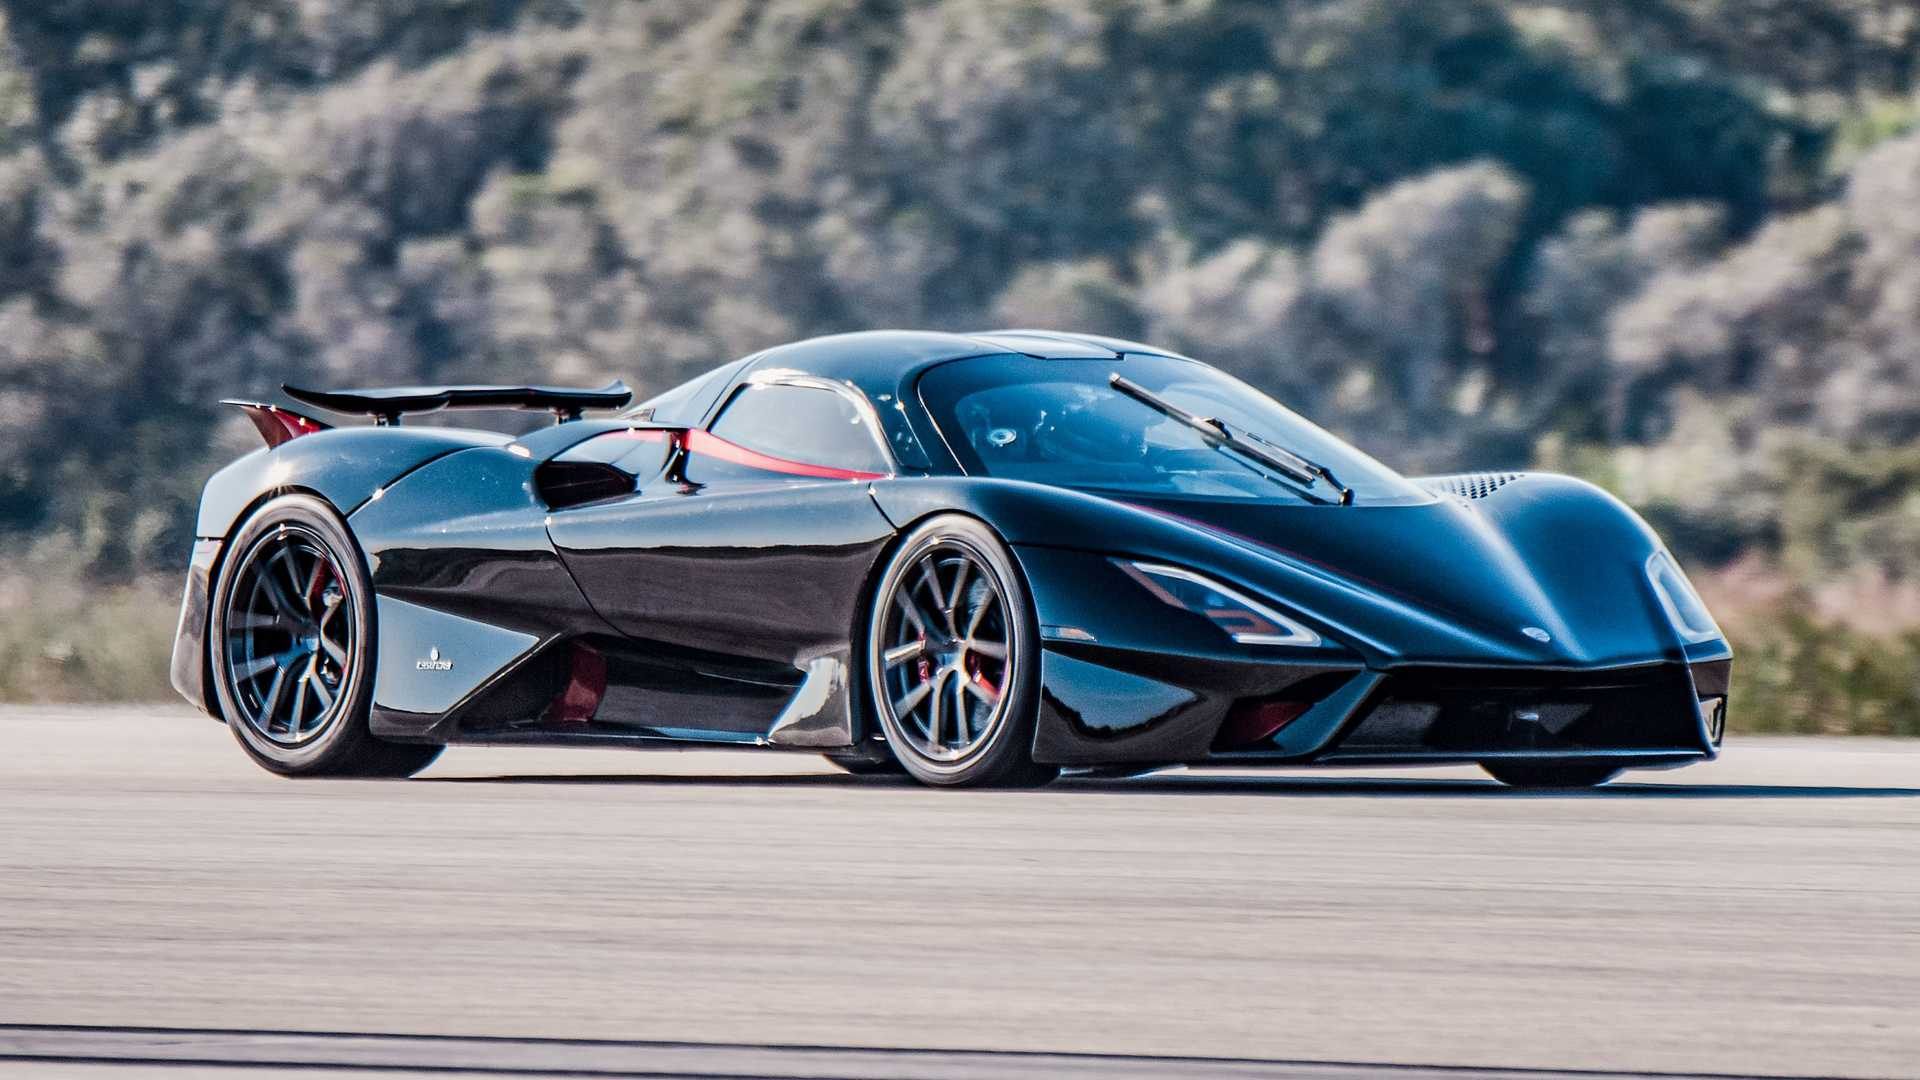 SSC Tuatara re-takes world's fastest auto record after raging brouhaha